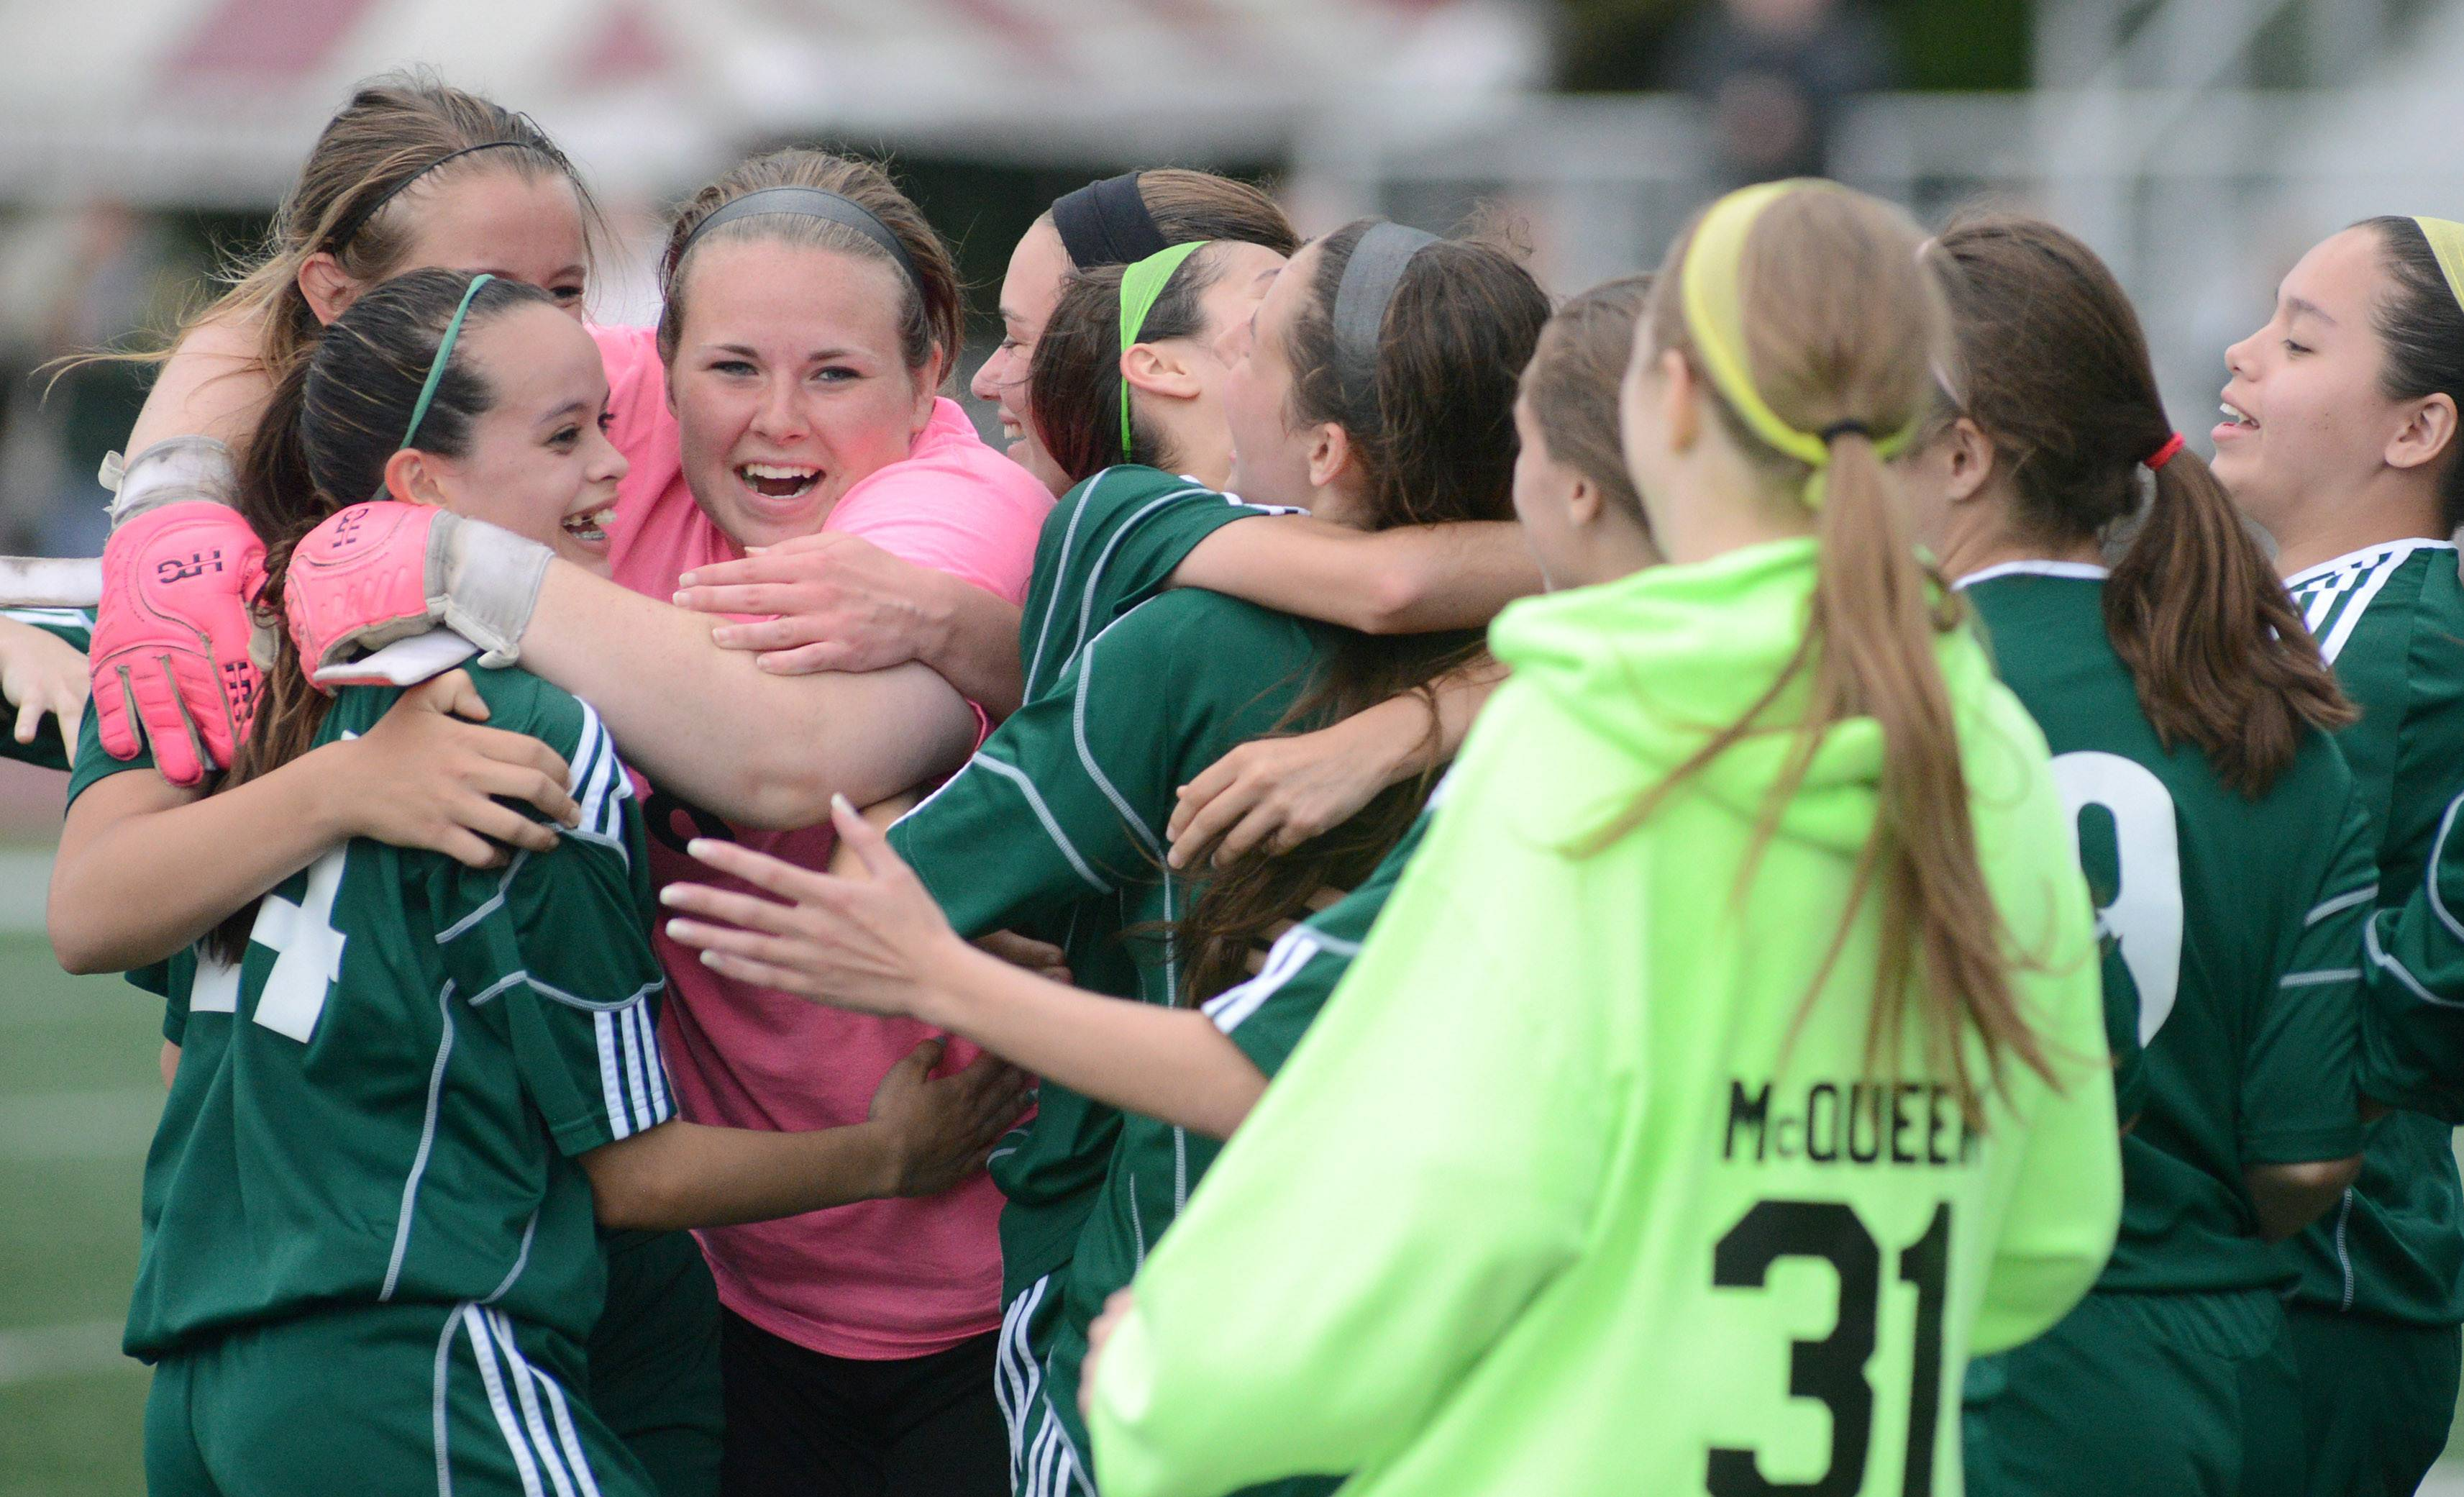 St. Edward goalie Paige Dykstra, facing, in pink, is swarmed by teammates as they rush the field after their Class 1A supersectional win over Chicago Latin at Concordia University in River Forest on Tuesday. St. Edward will take on Manteno in a state semifinal at North Central College in Naperville on Friday at 7 p.m.